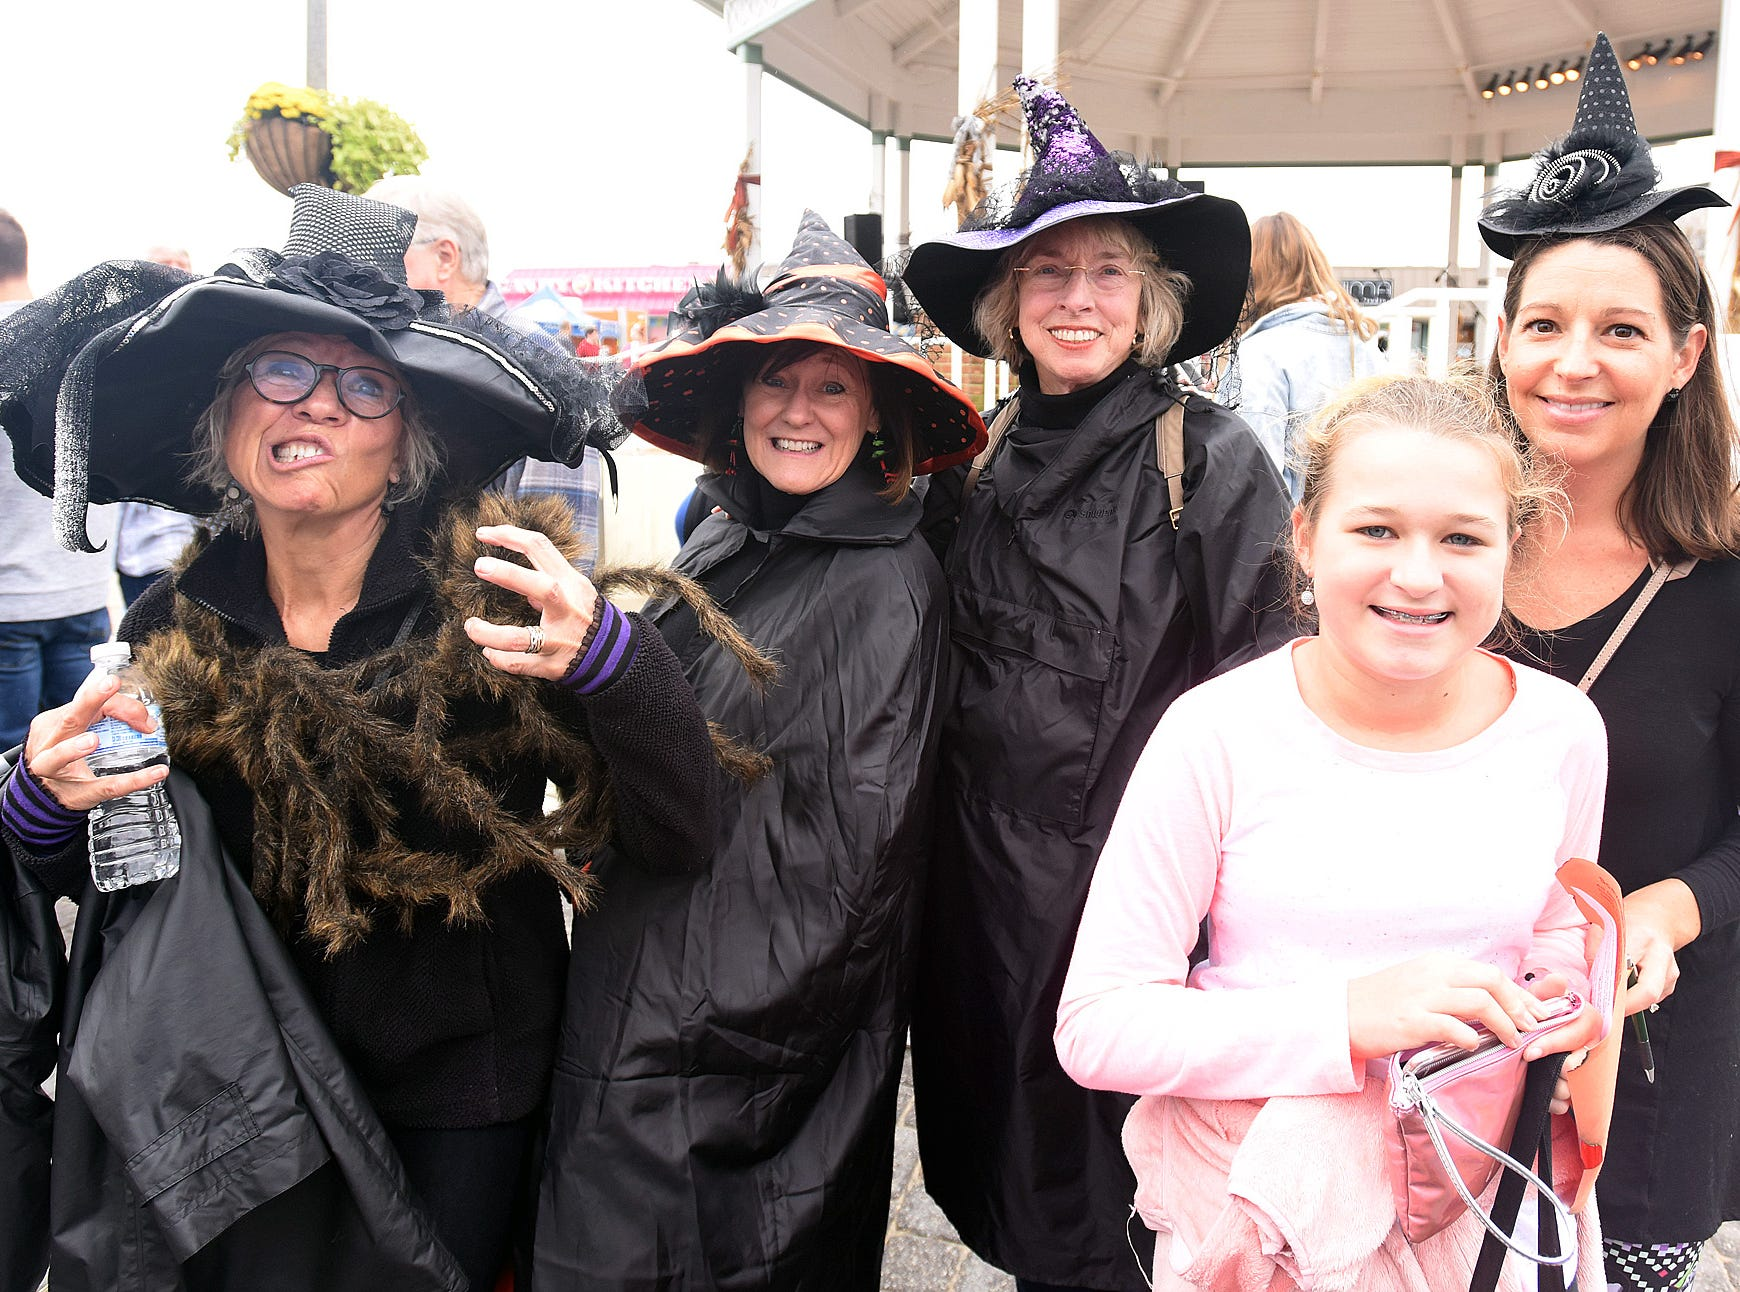 A strong Nor'easter passed by the Delaware Coastal waters causing flooding in the Rehoboth and Dewey Beach on Saturday October 27th as the Annual Sea Witch Festival was held.Special to the News Journal / CHUCK SNYDER